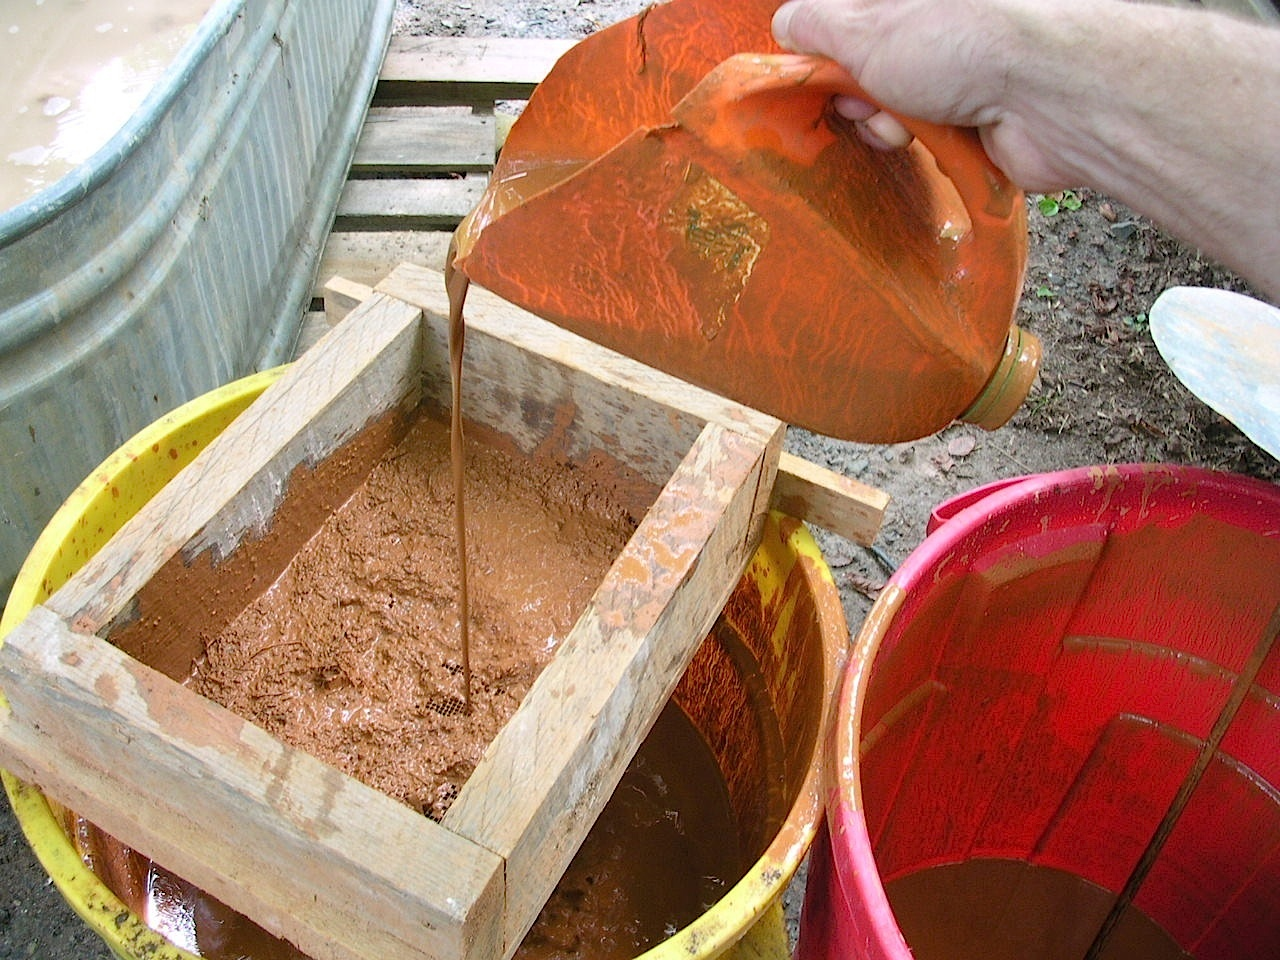 Sieving Local Clay